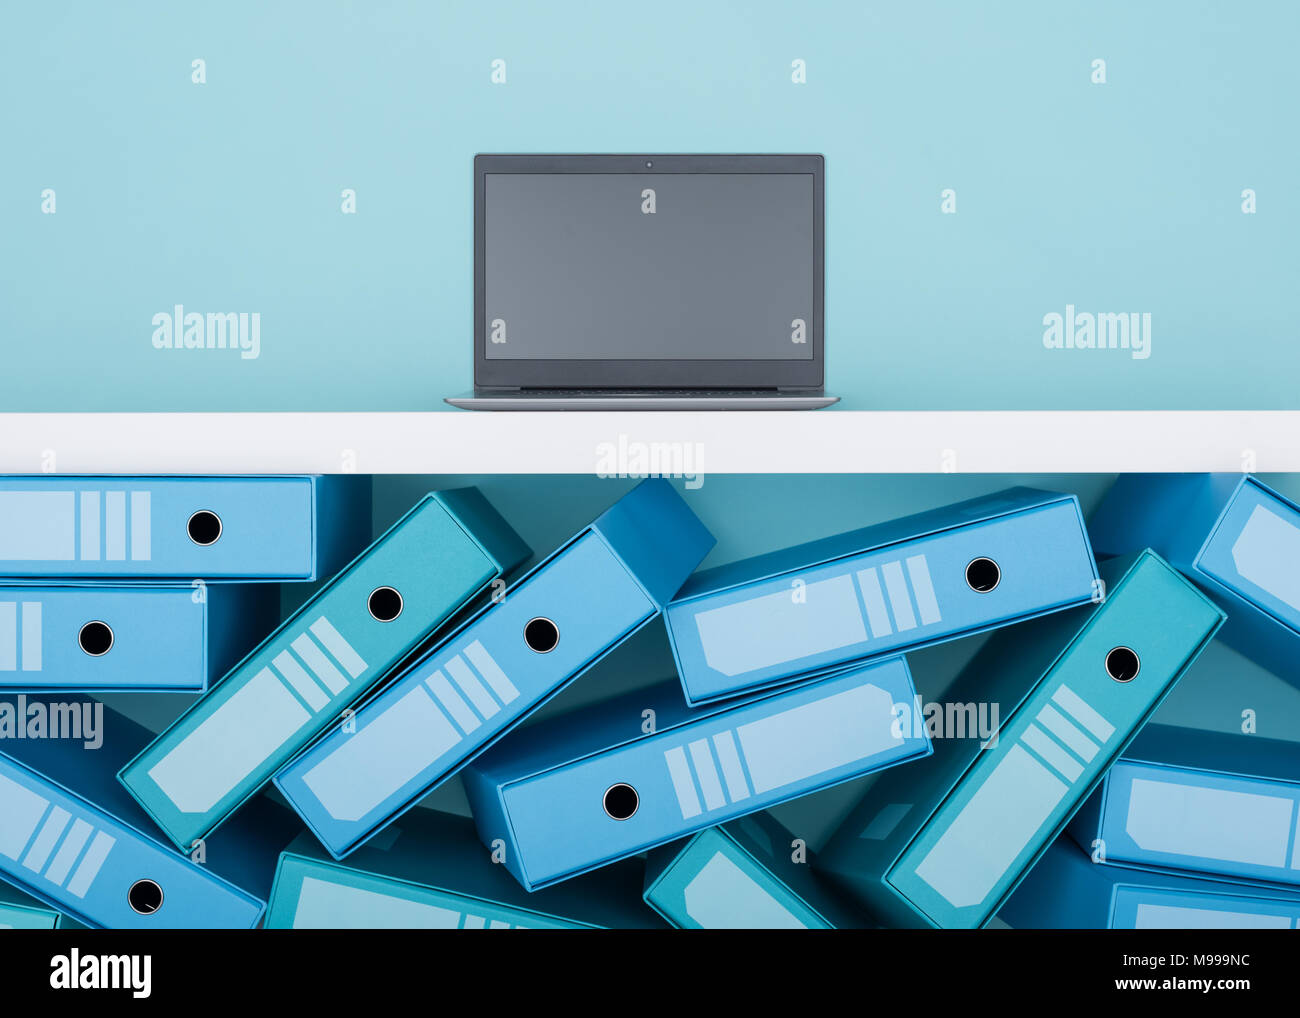 Messy load of archive binders and laptop: database management and files archive concept - Stock Image